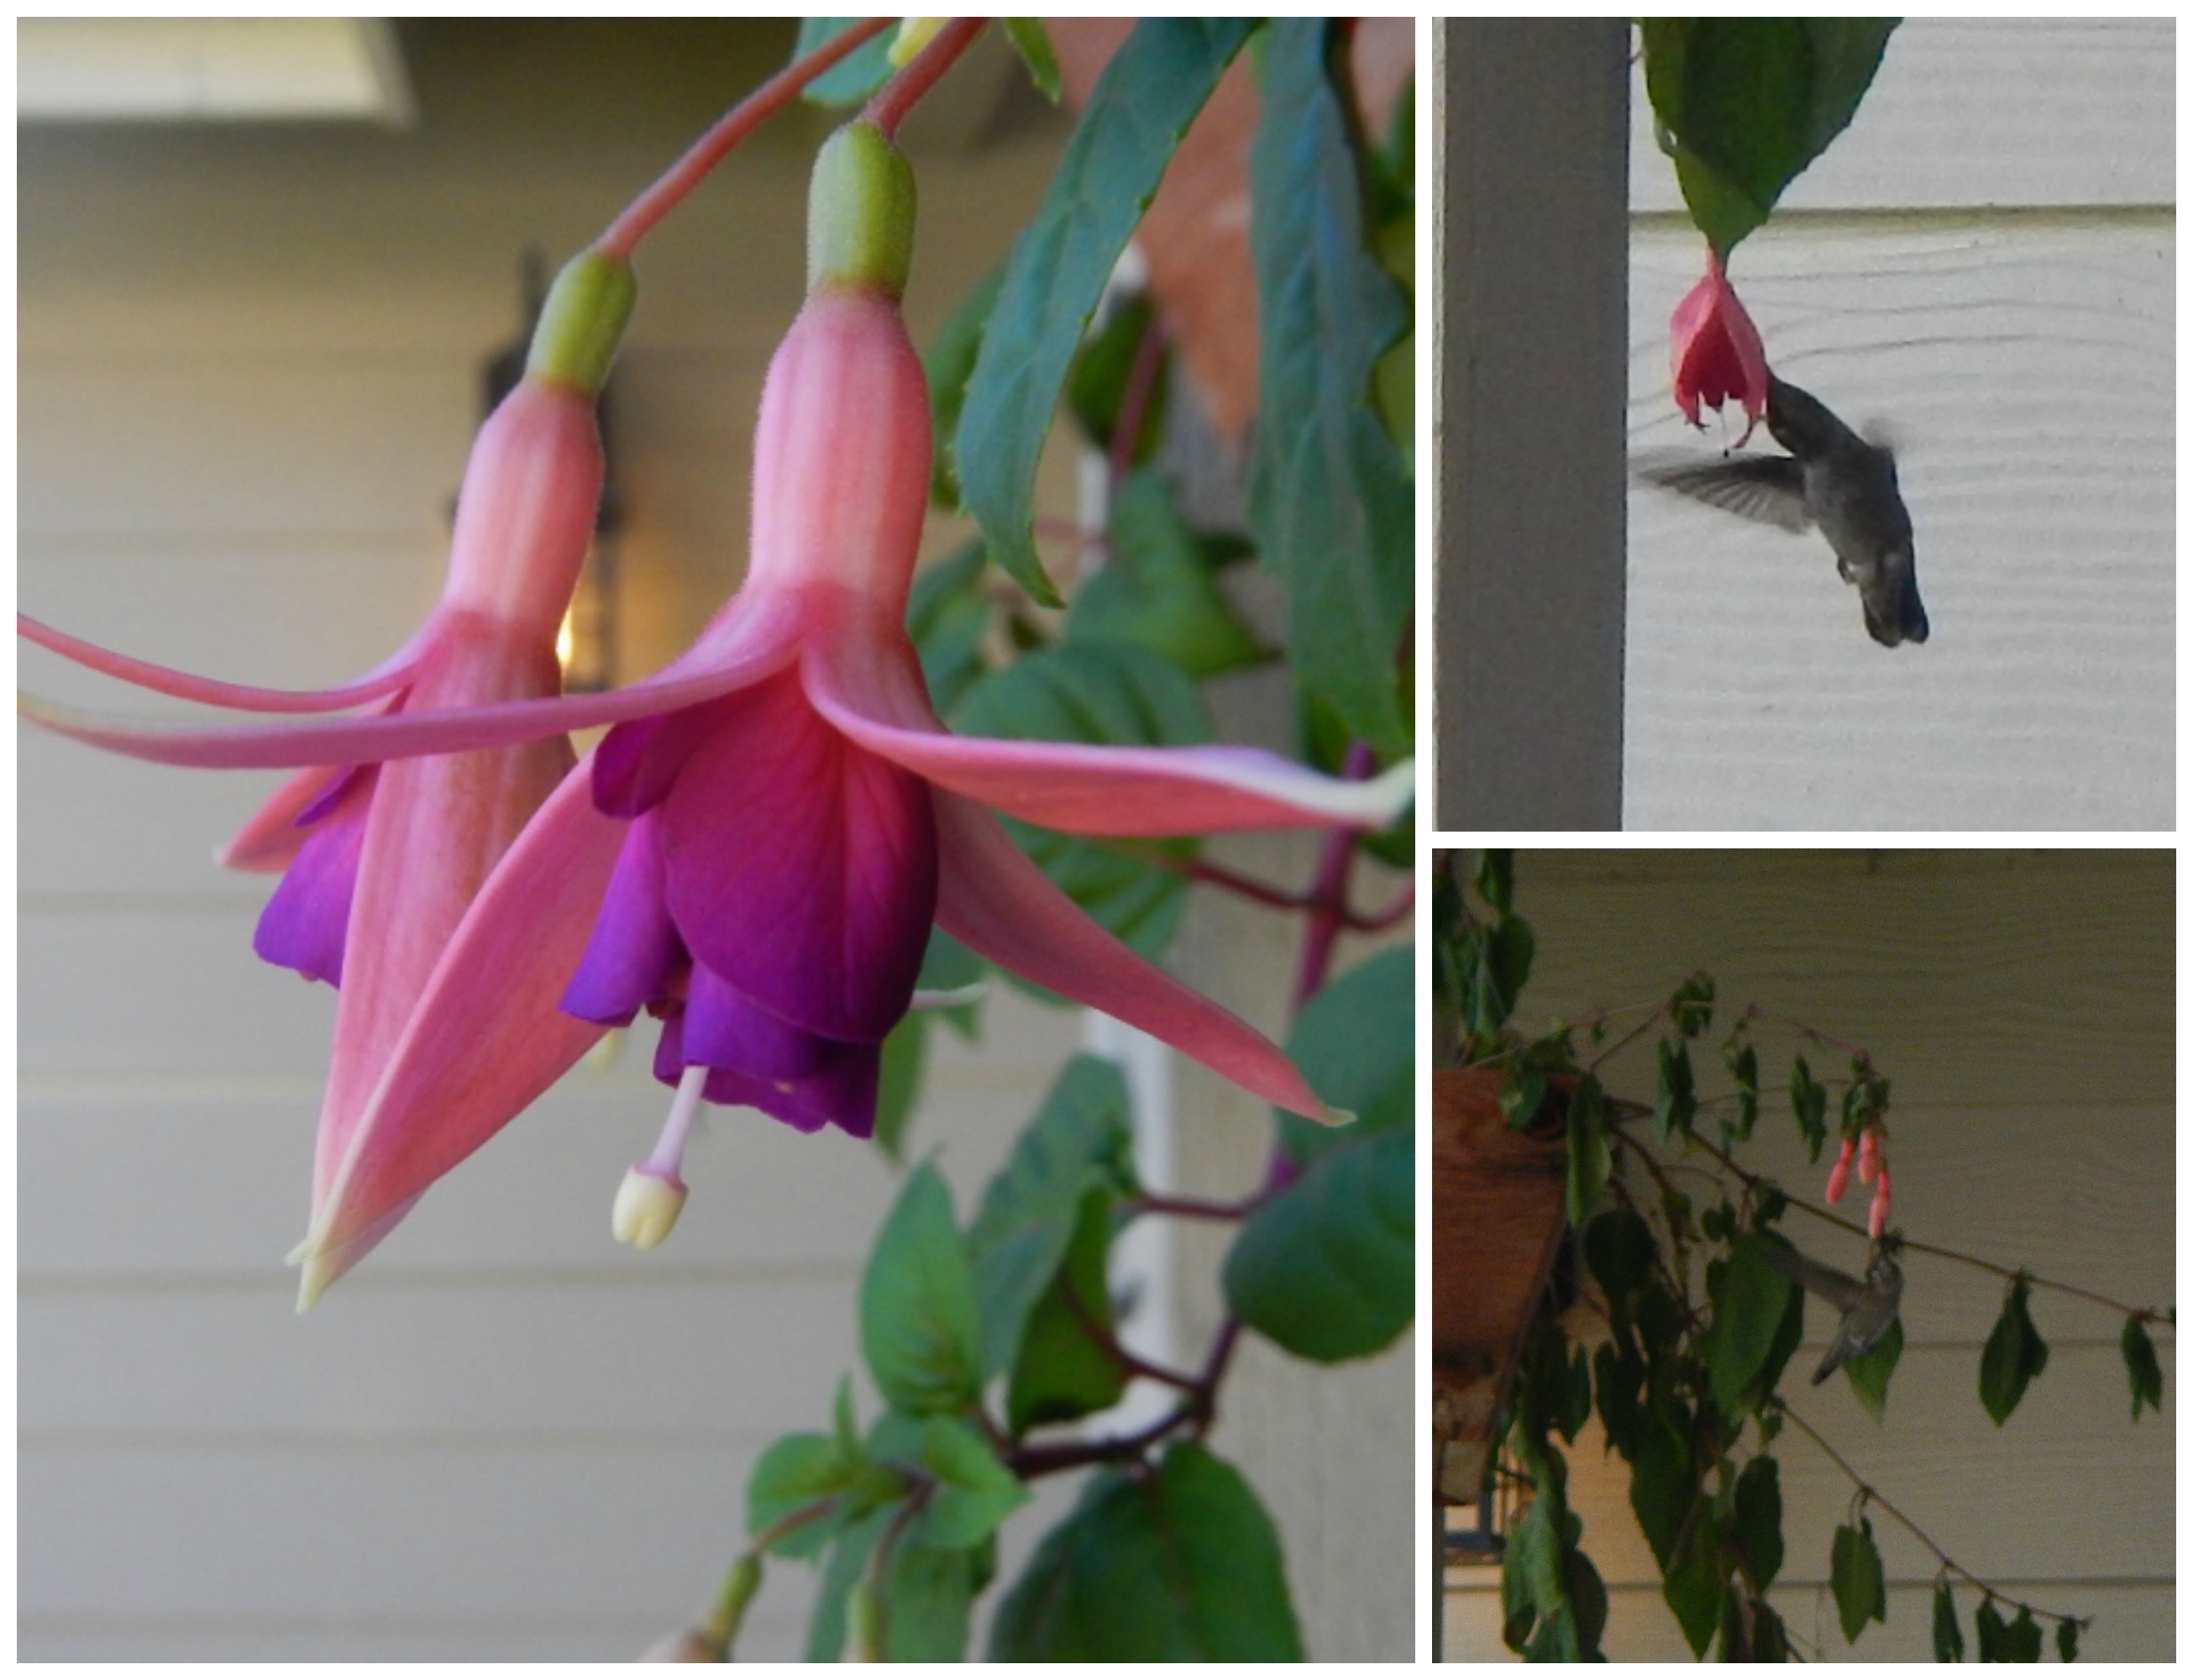 Flowers For Hanging Baskets That Attract Hummingbirds : How to attract care for hummingbirds includes homemade